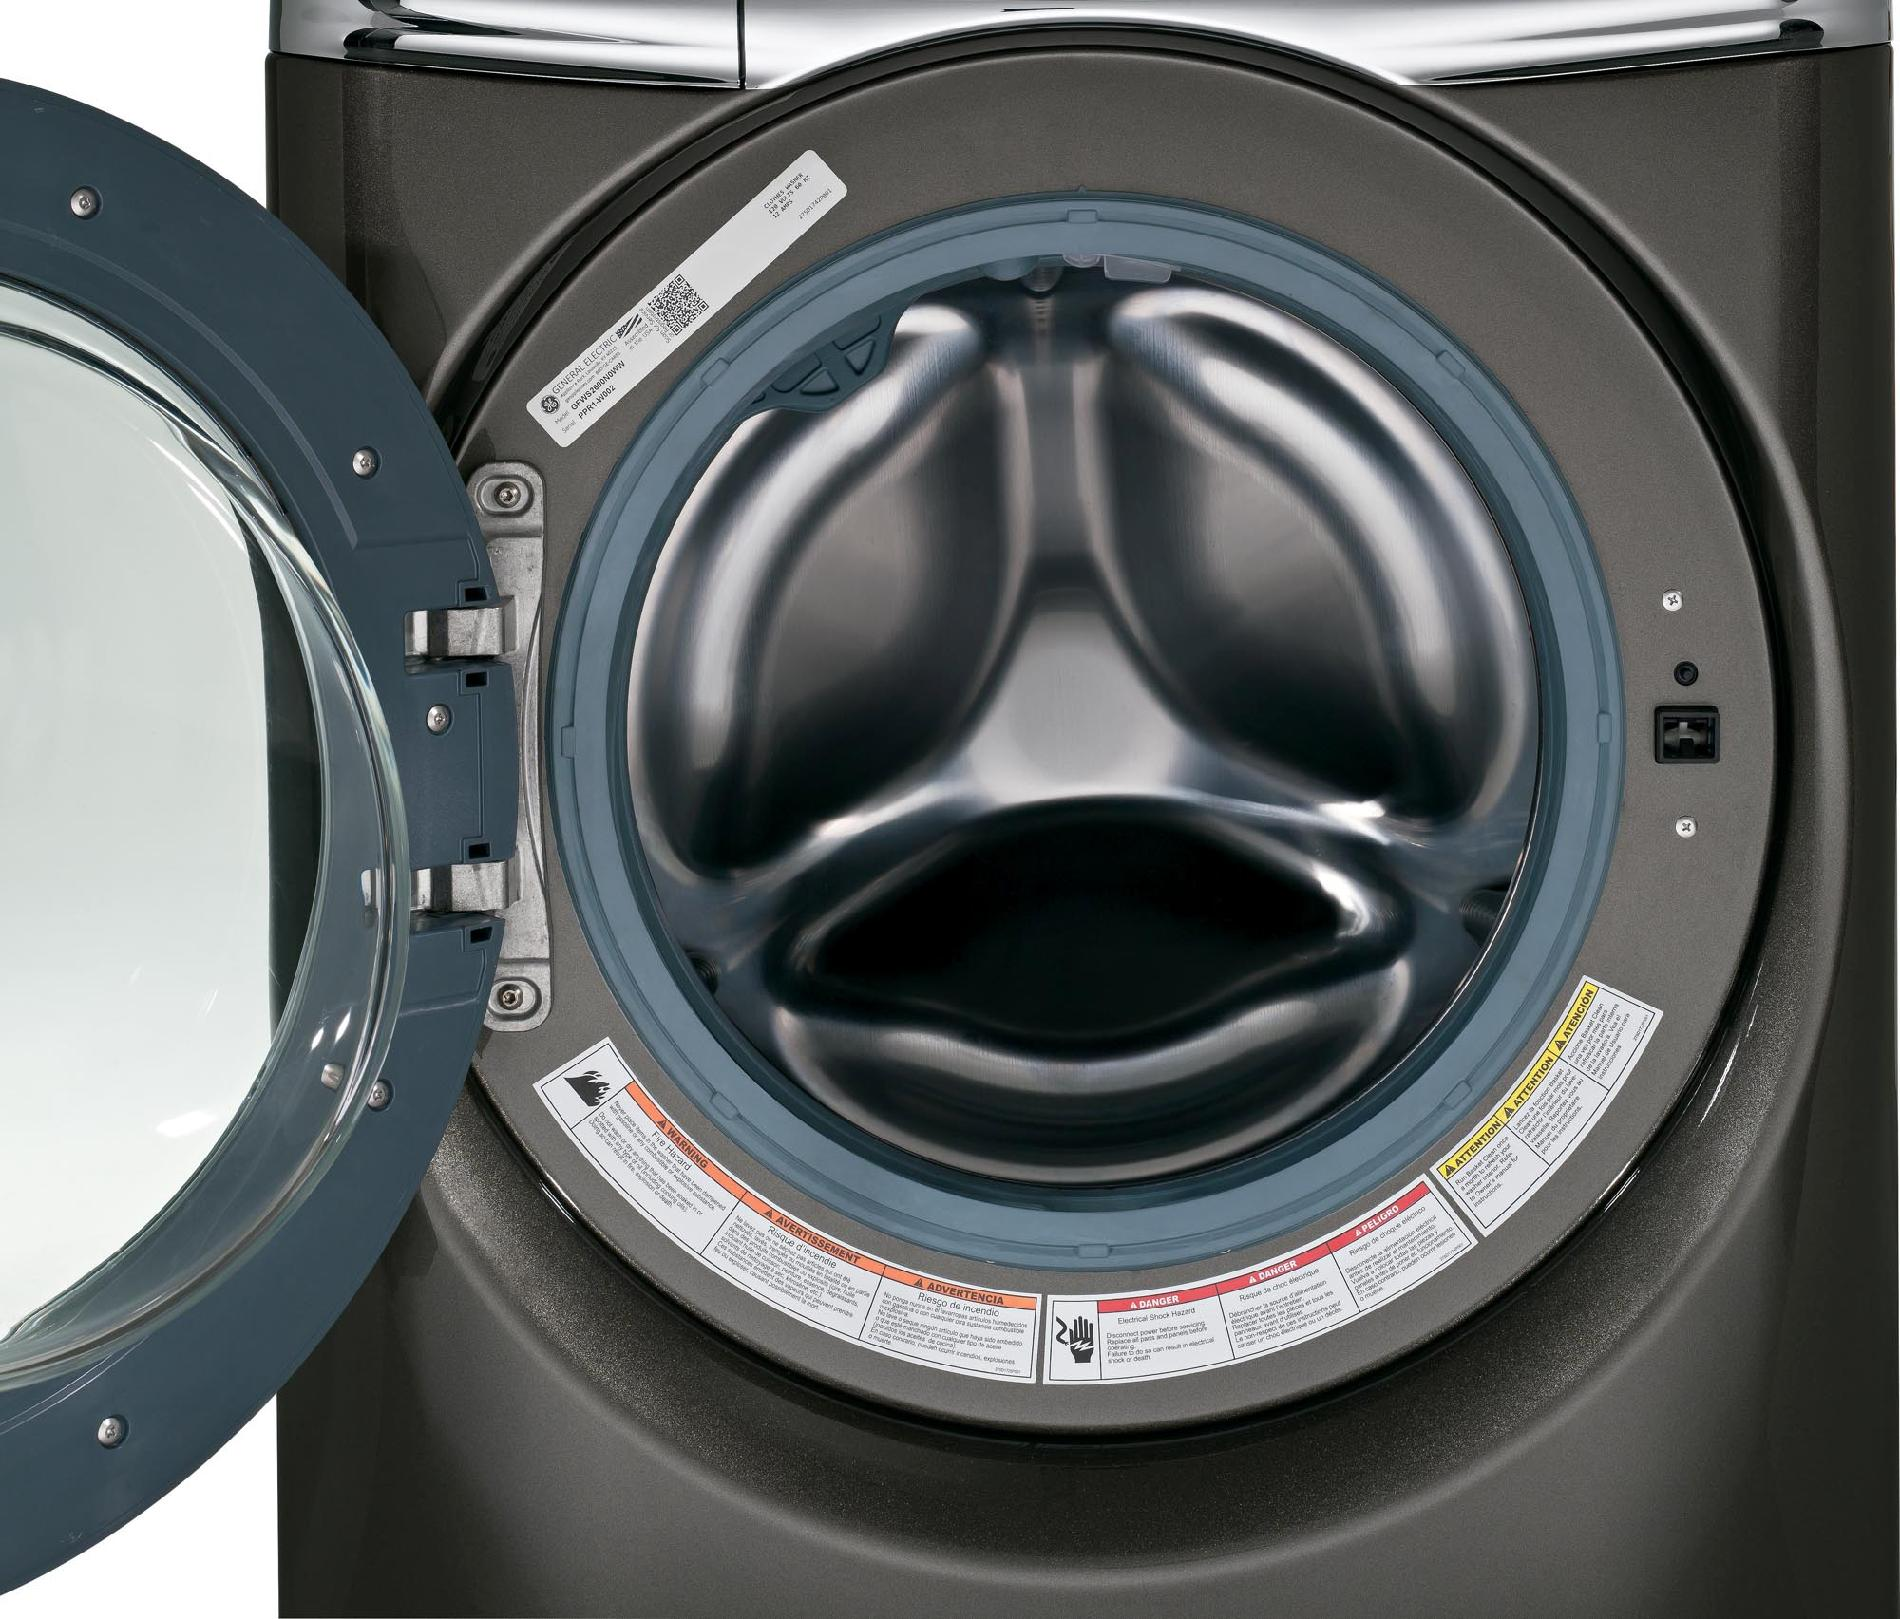 GE Appliances GFWR4805FMC 4.8 cu. ft. RightHeight™ Design Front-Load Washer - Metallic Carbon